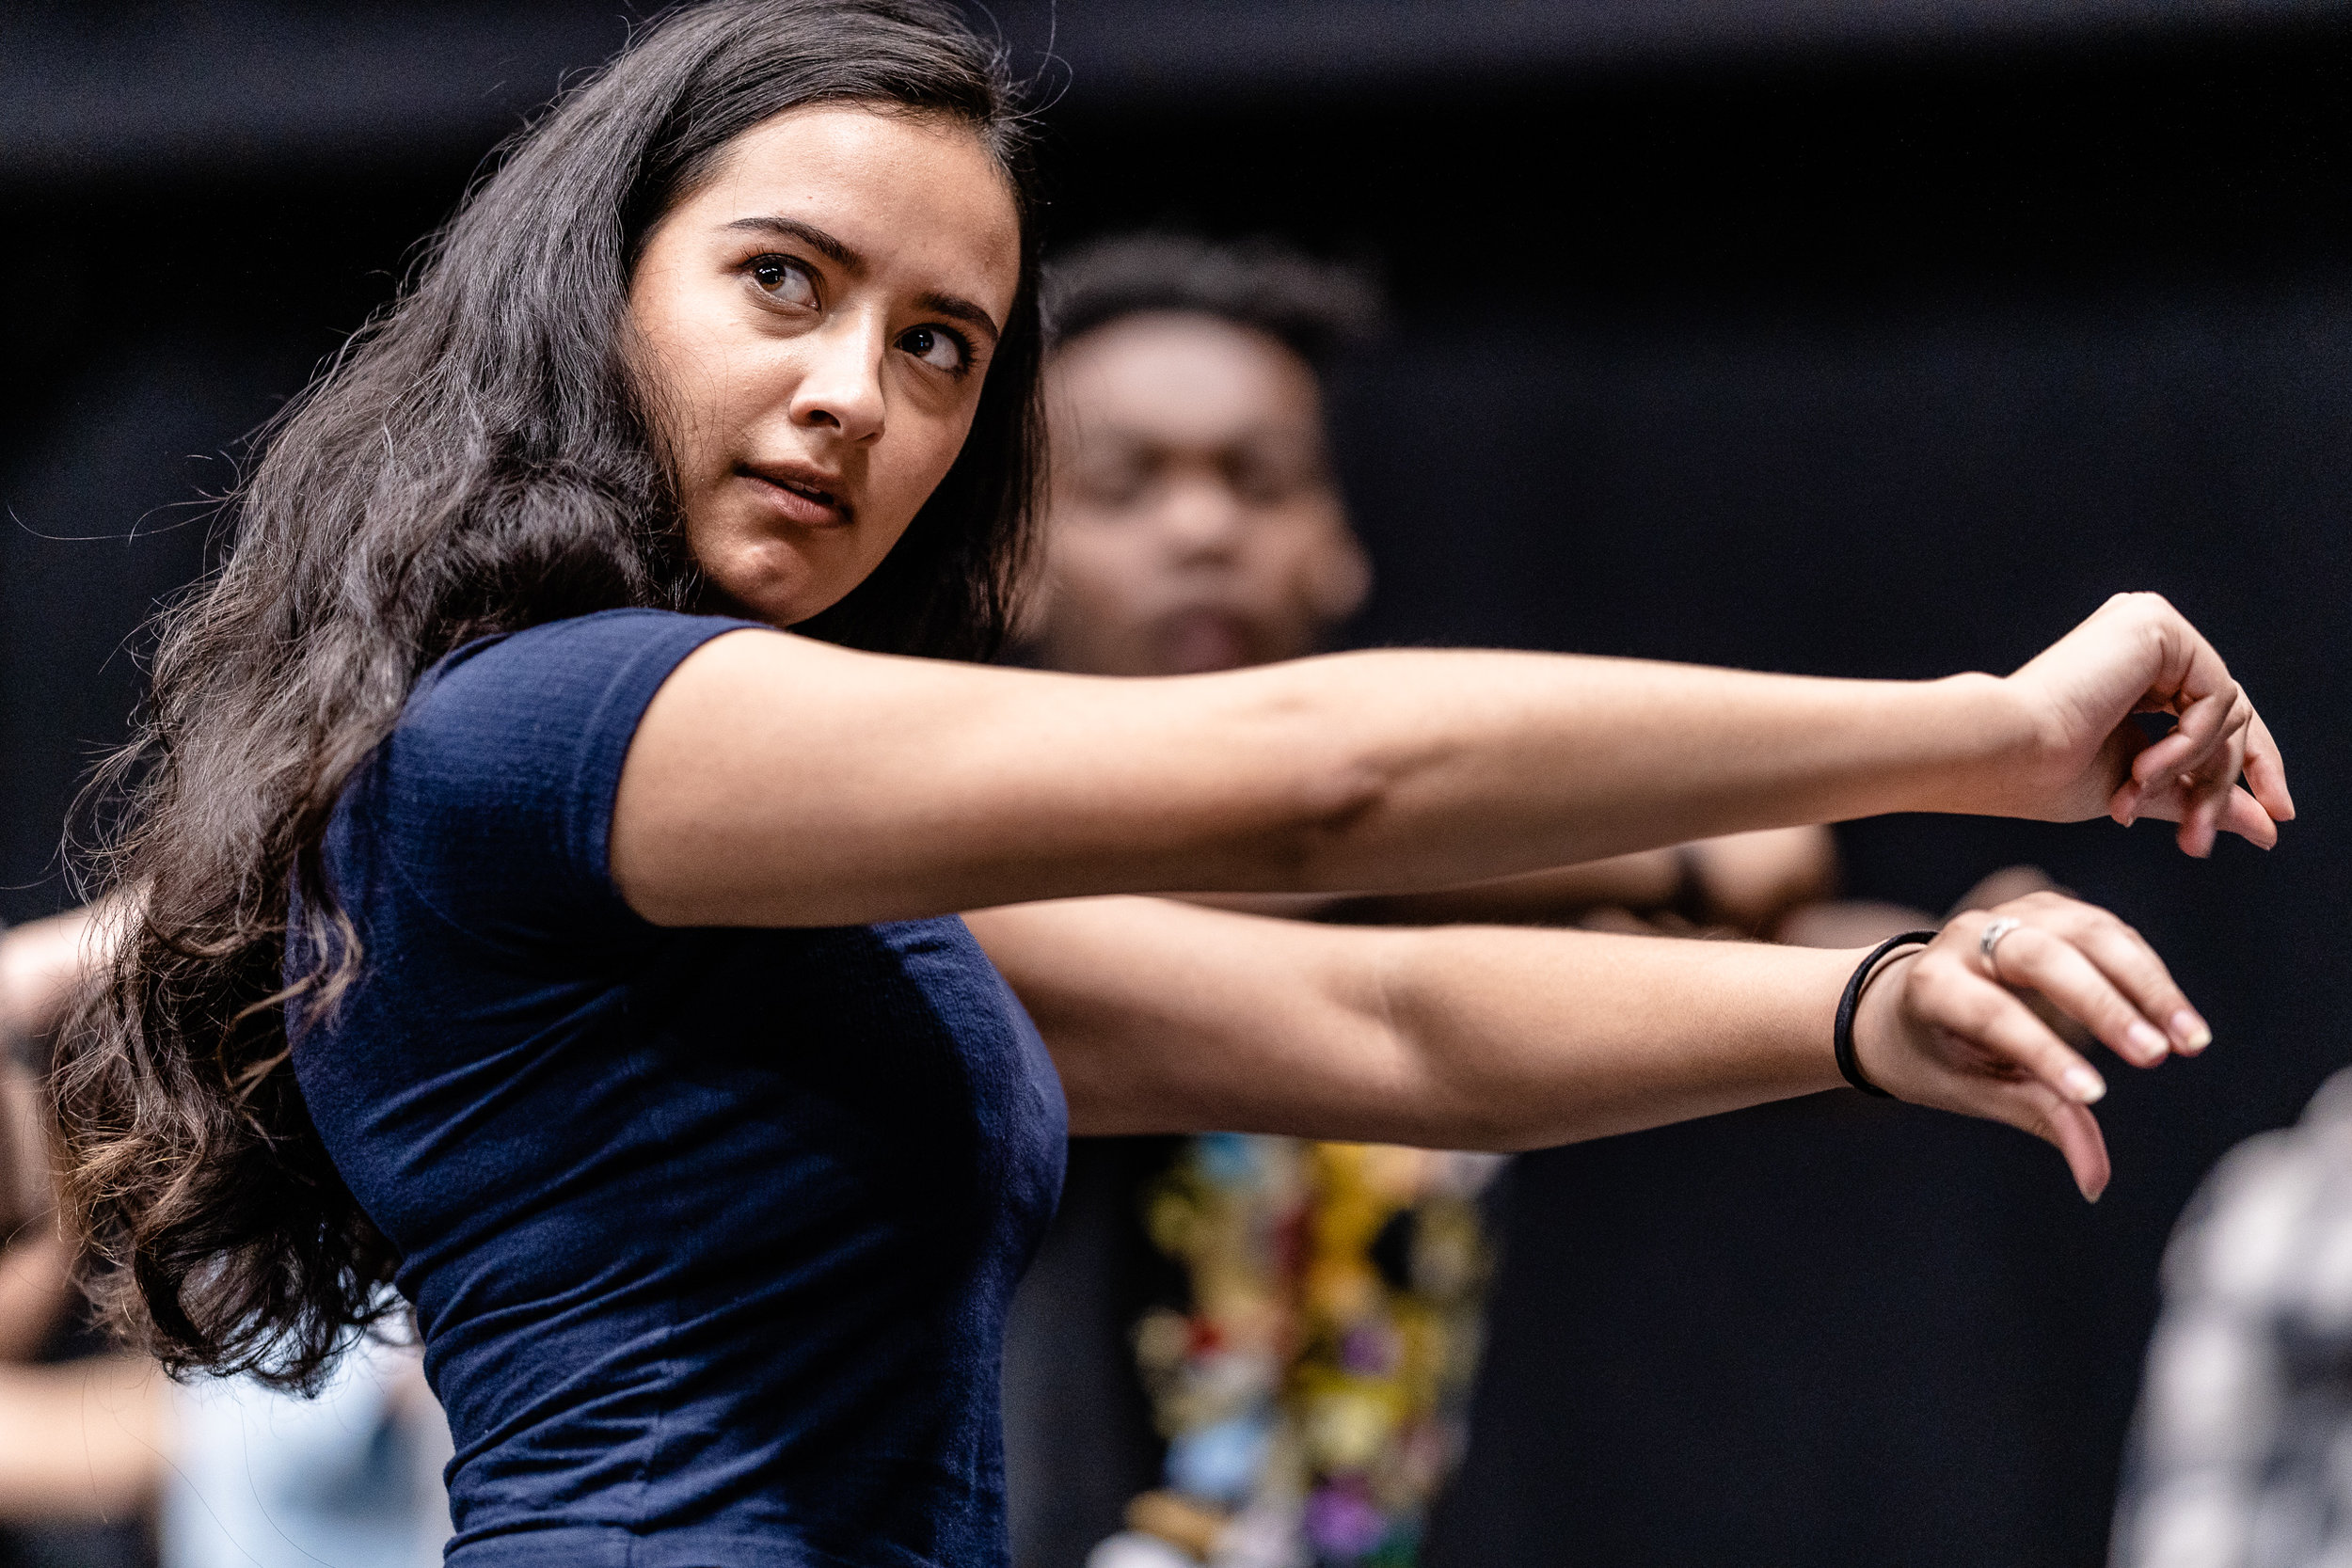 Julia Michelle, 26, an SMC Theatre Arts major from Umeå, Sweden, rehearses flamenco choreography for her role as Lady Macbeth in the SMC production of Flamenco Macbeth at the SMC Studio Stage on Thursday, March 21, 2019. As soon as this dance rehearsal ended, Michelle had to dash from the Studio Stage to SMC's Main Stage to participate in the Tech Rehearsal for her role as Mistress Quickley in the SMC production of Shakespeare in Love. Flamenco Macbeth is an adaptation of Shakespeare's Macbeth by SMC Theatre Arts department chair Perviz Sawoski. The play will be performed at the SMC Studio Stage, a 100-seat thrust stage, from April 26 through May 5, 2019. (Glenn Zucman/The Corsair)